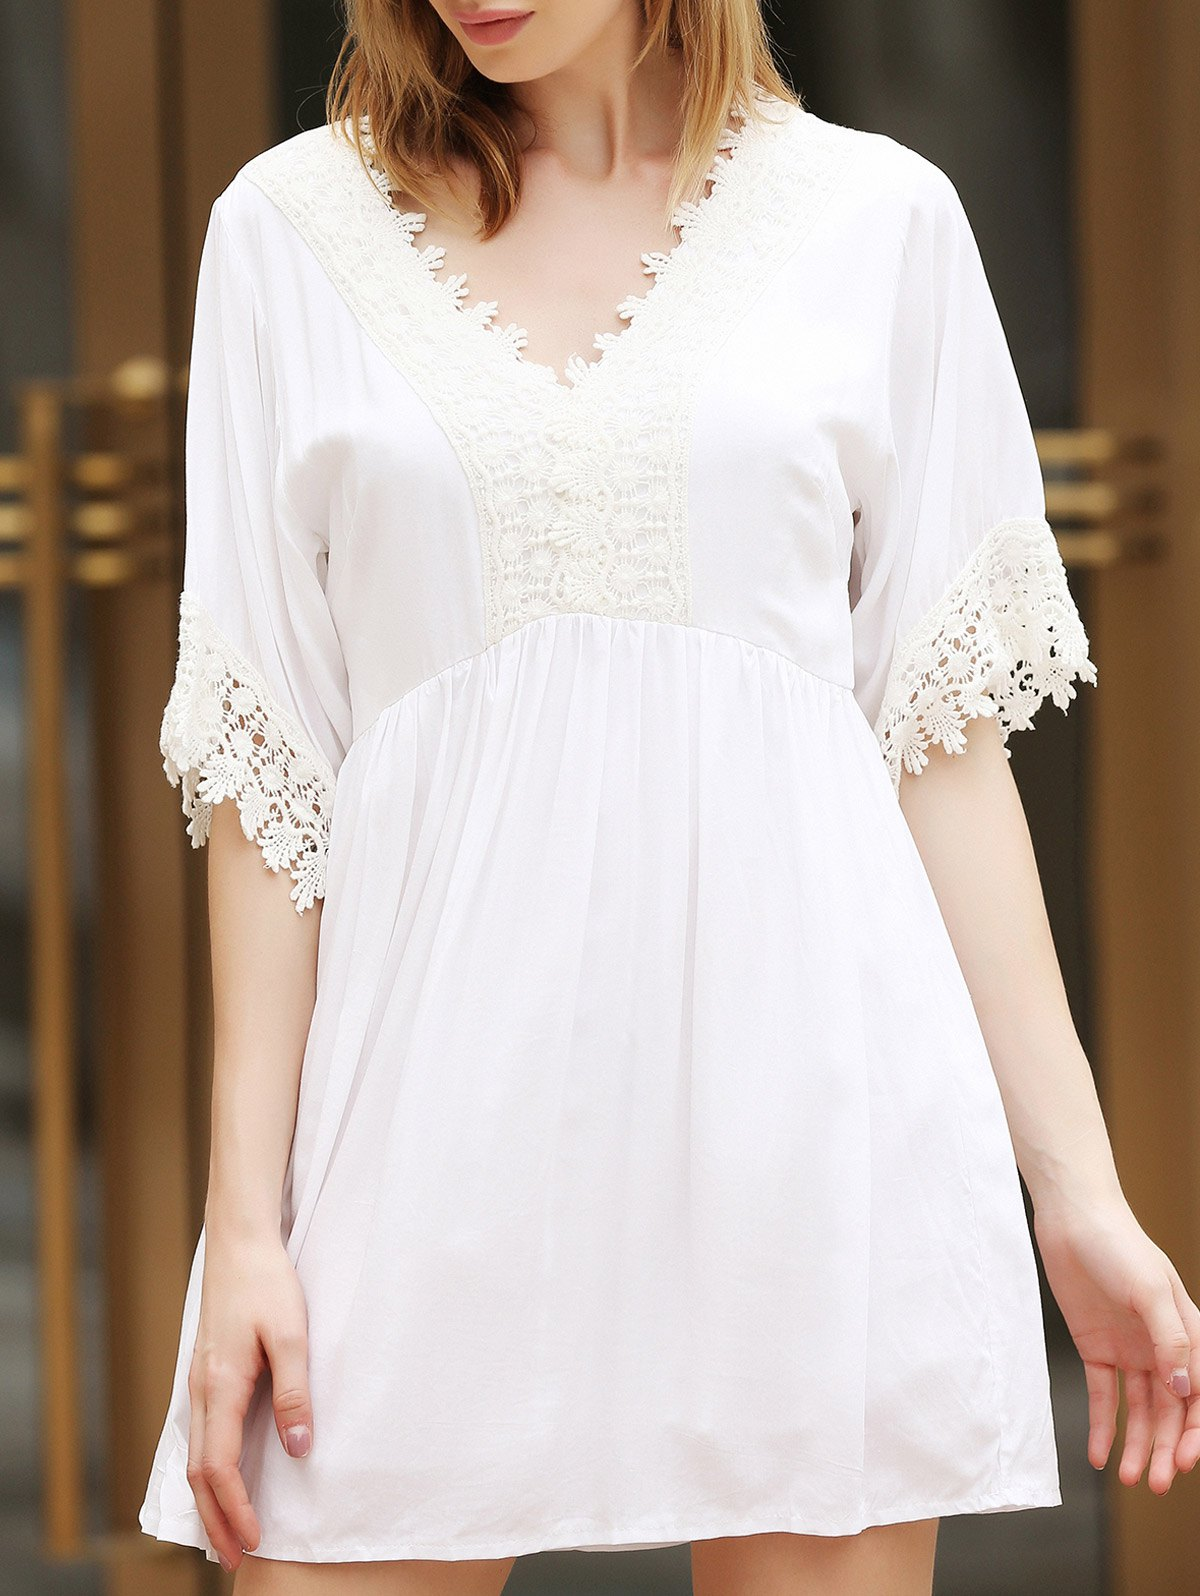 Lace Splicing Short Sleeve V-Neck White Color High-Waisted Loose Dress - WHITE S